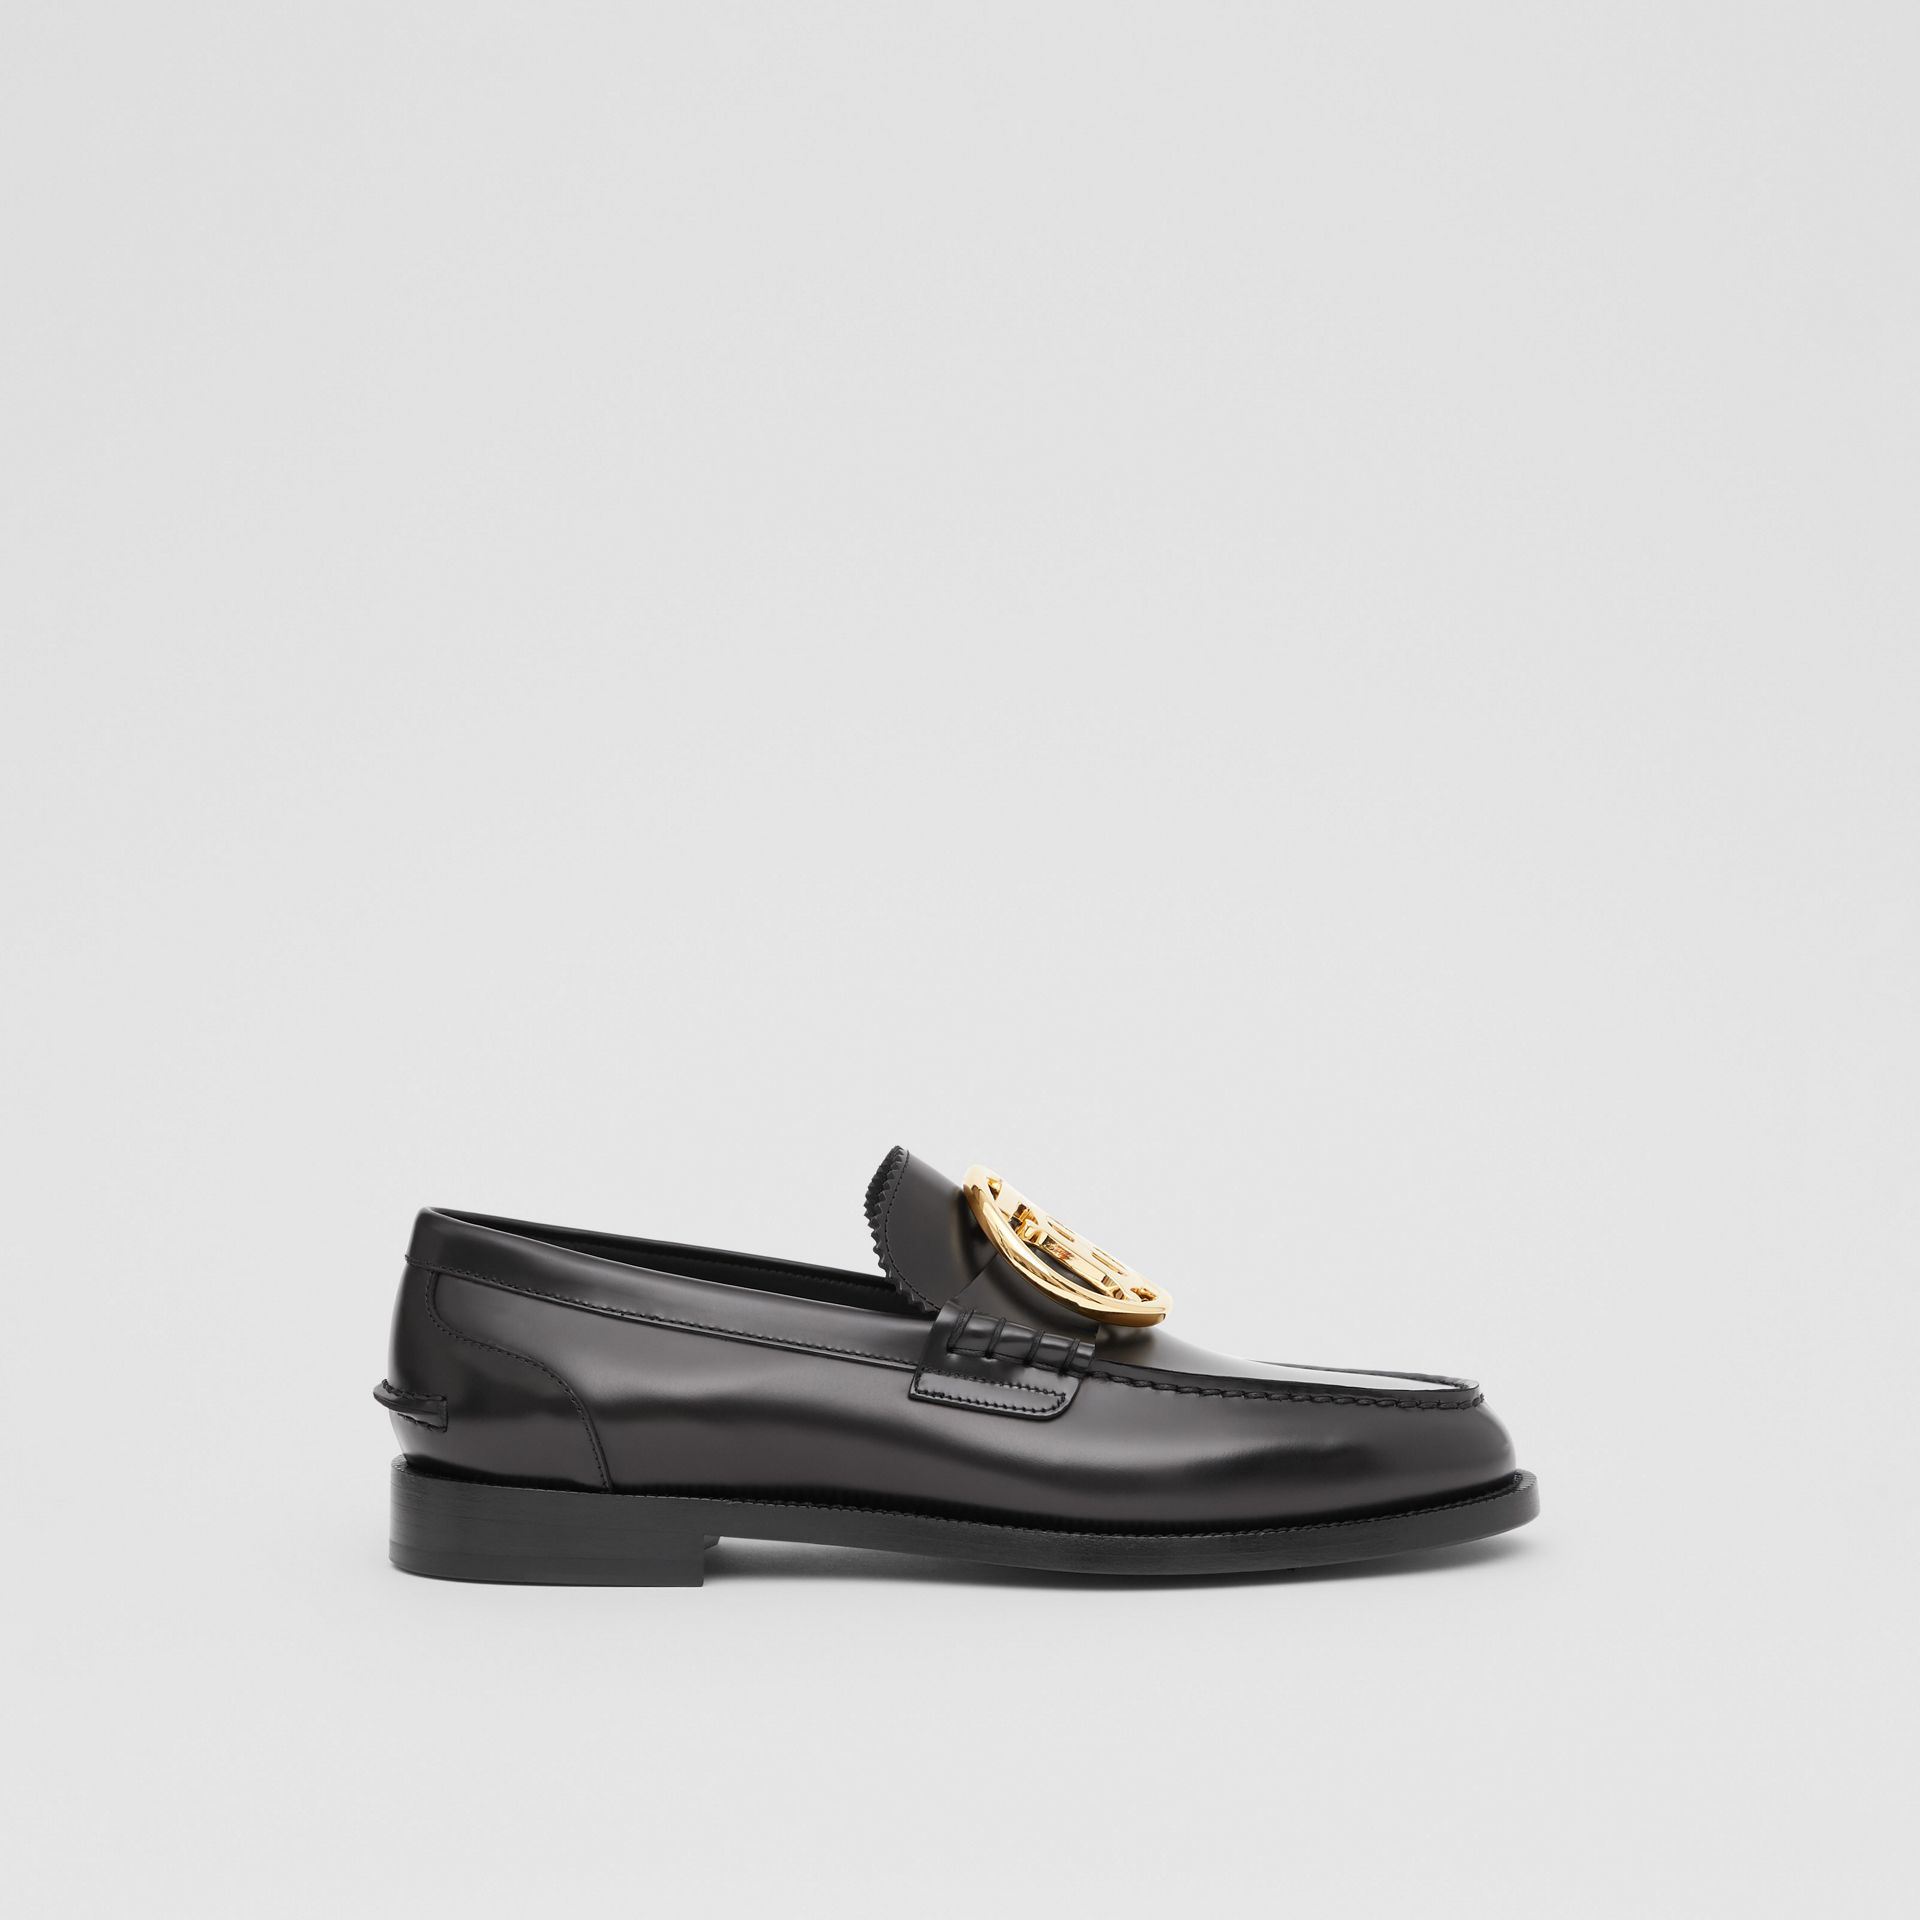 Monogram Motif Leather Loafers in Black - Men | Burberry - gallery image 4